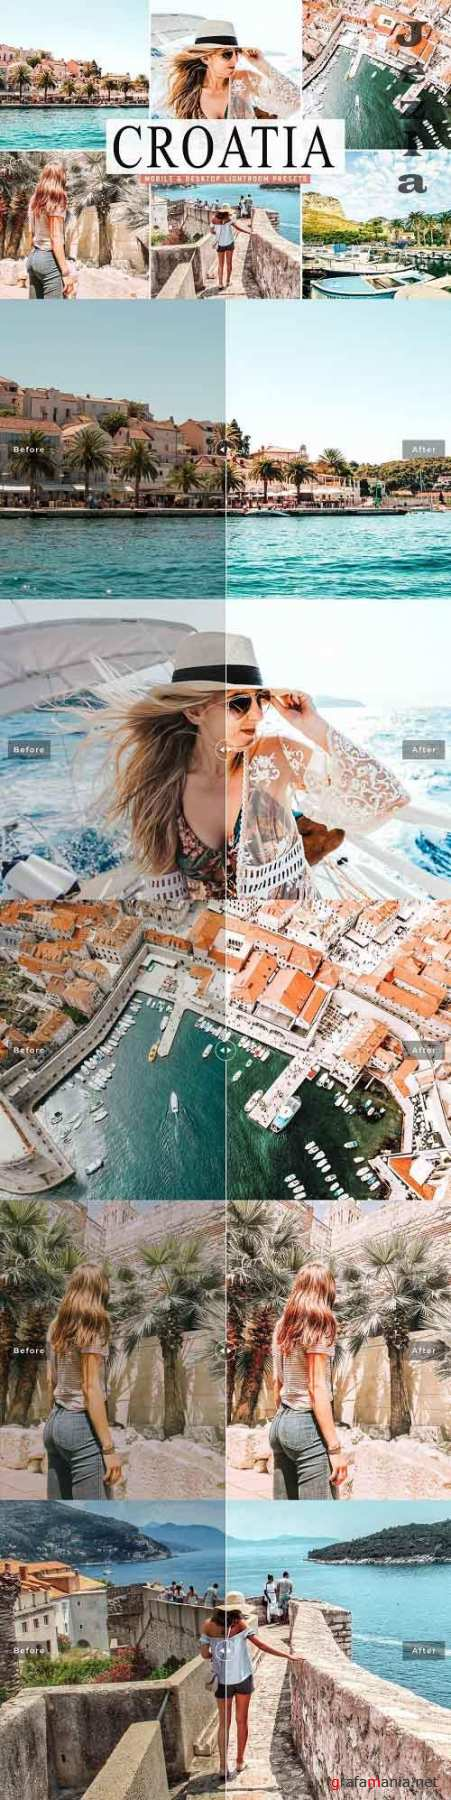 Croatia Lightroom Presets Pack - 5039061 - Mobile & Desktop